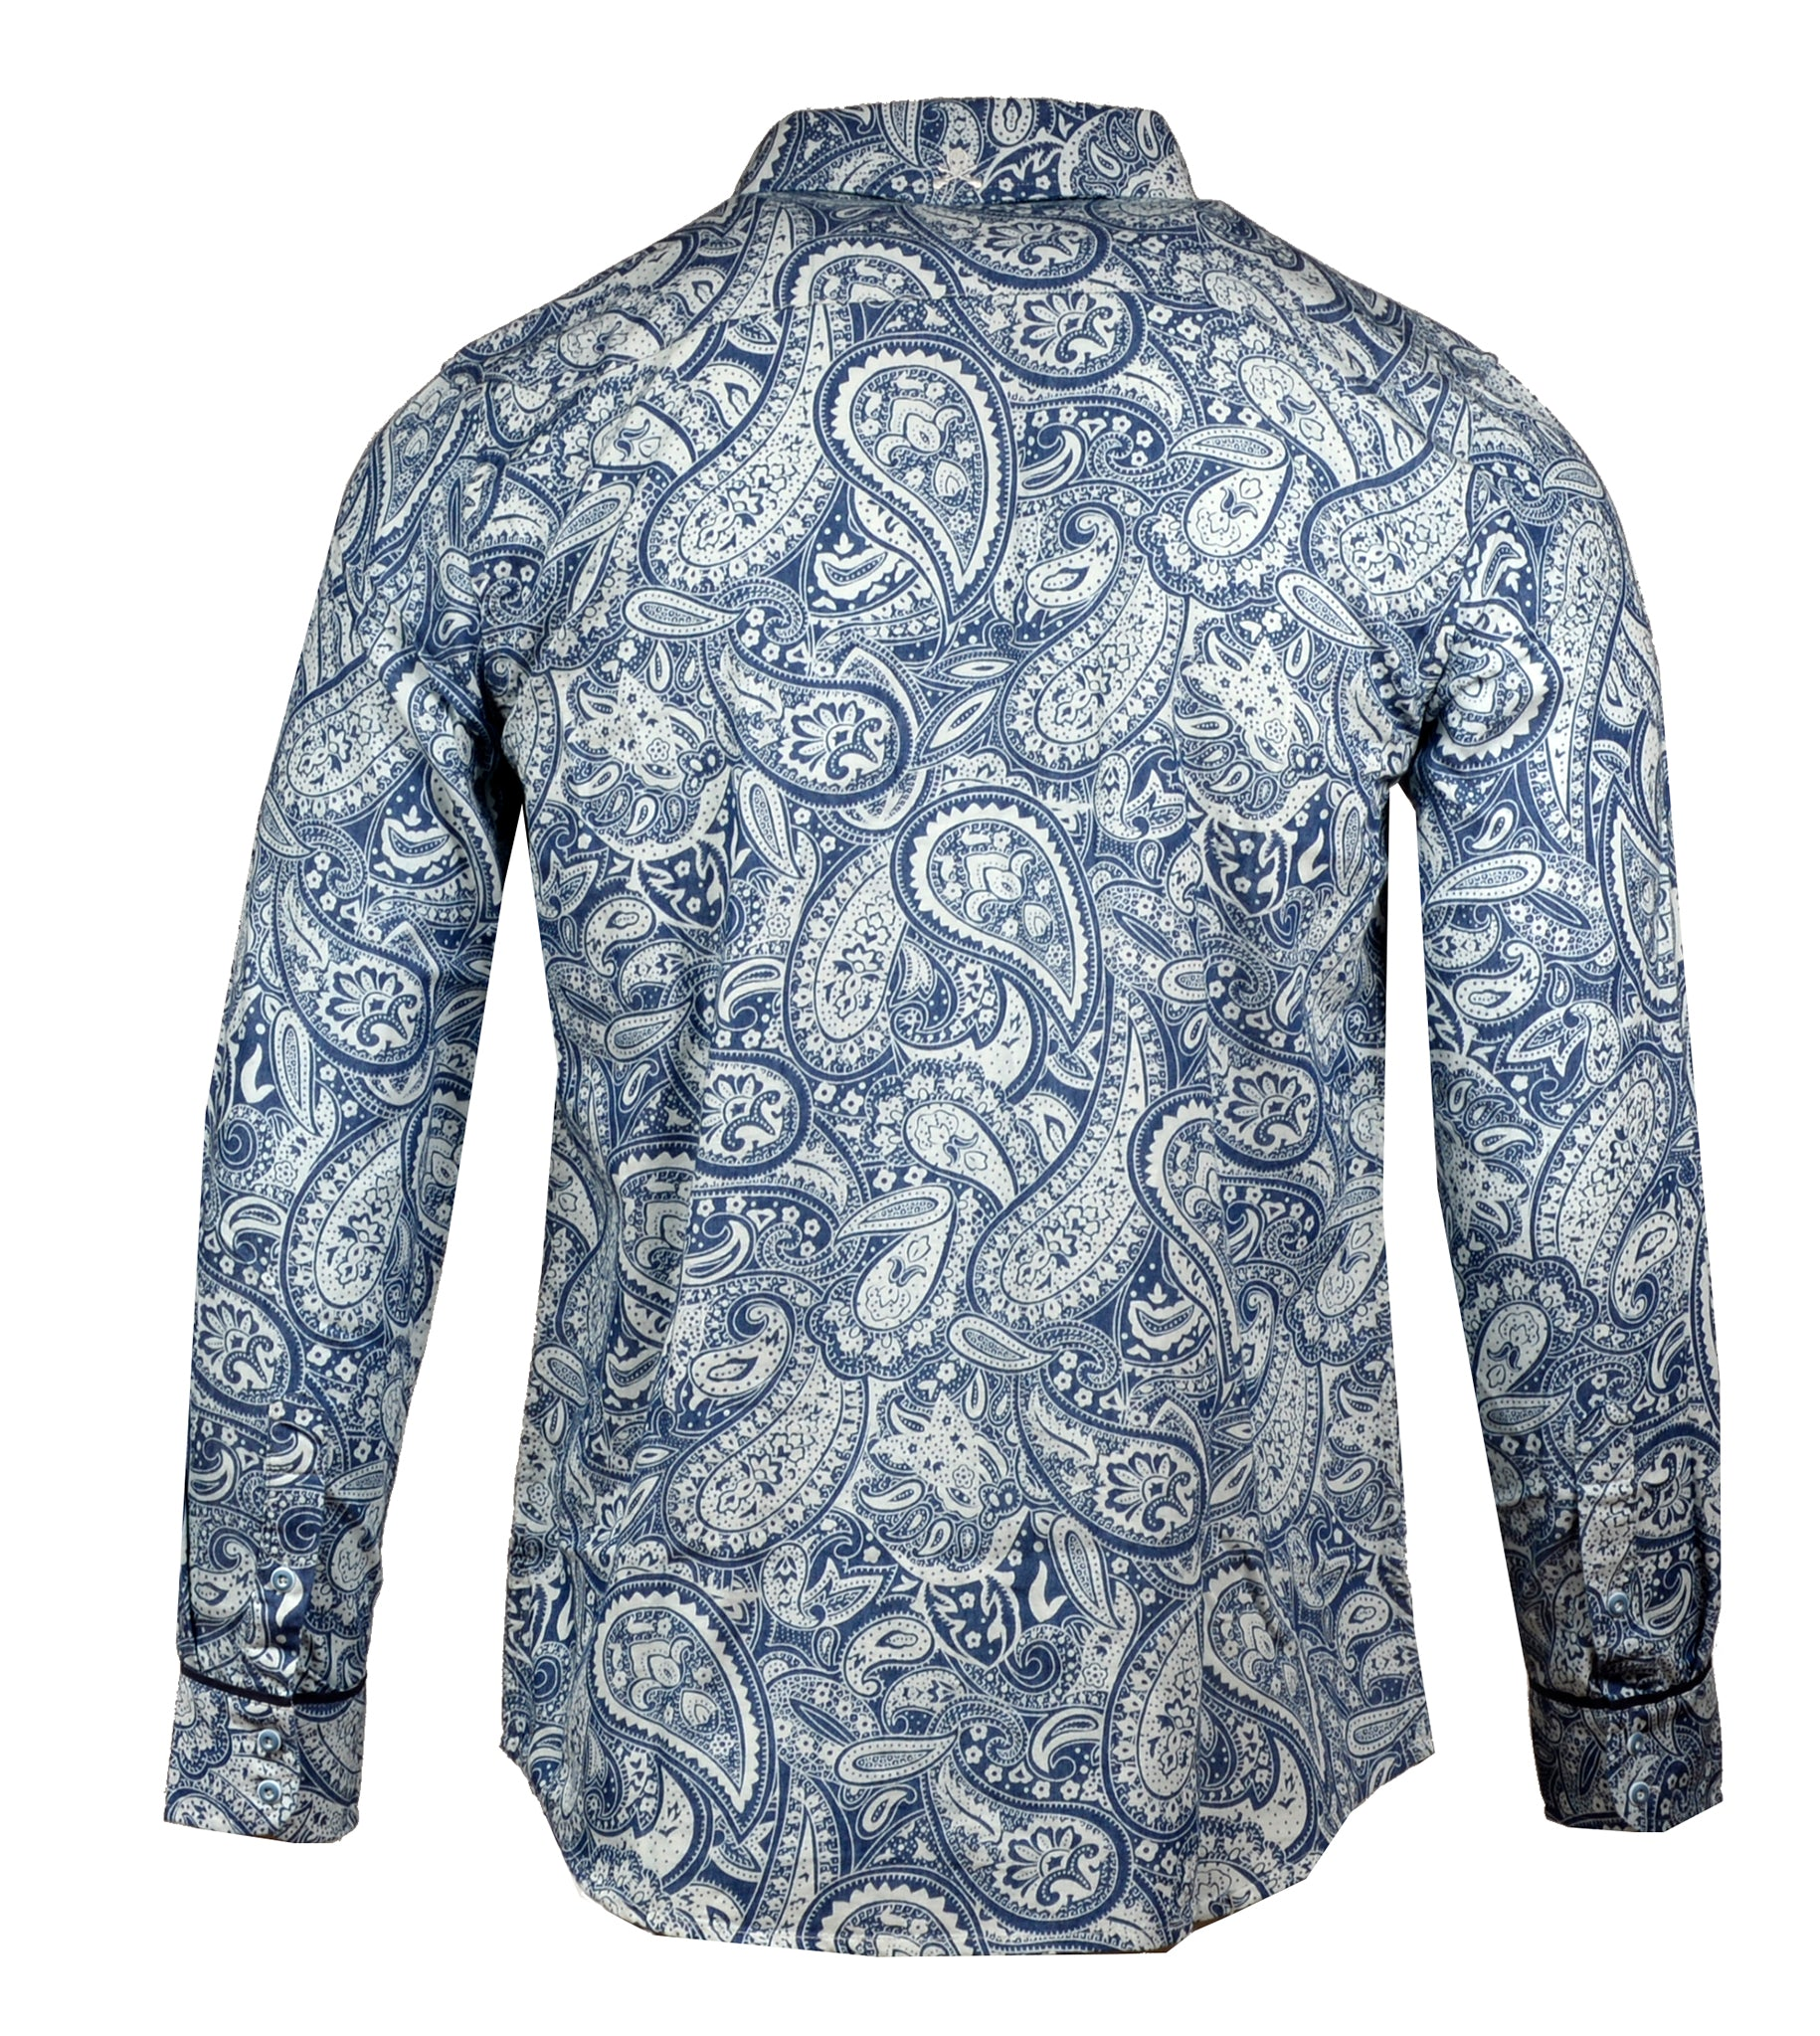 Men's Casual Fashion Button Up Shirt - Hillbilly Deluxe Paisley by Rock Roll n Soul